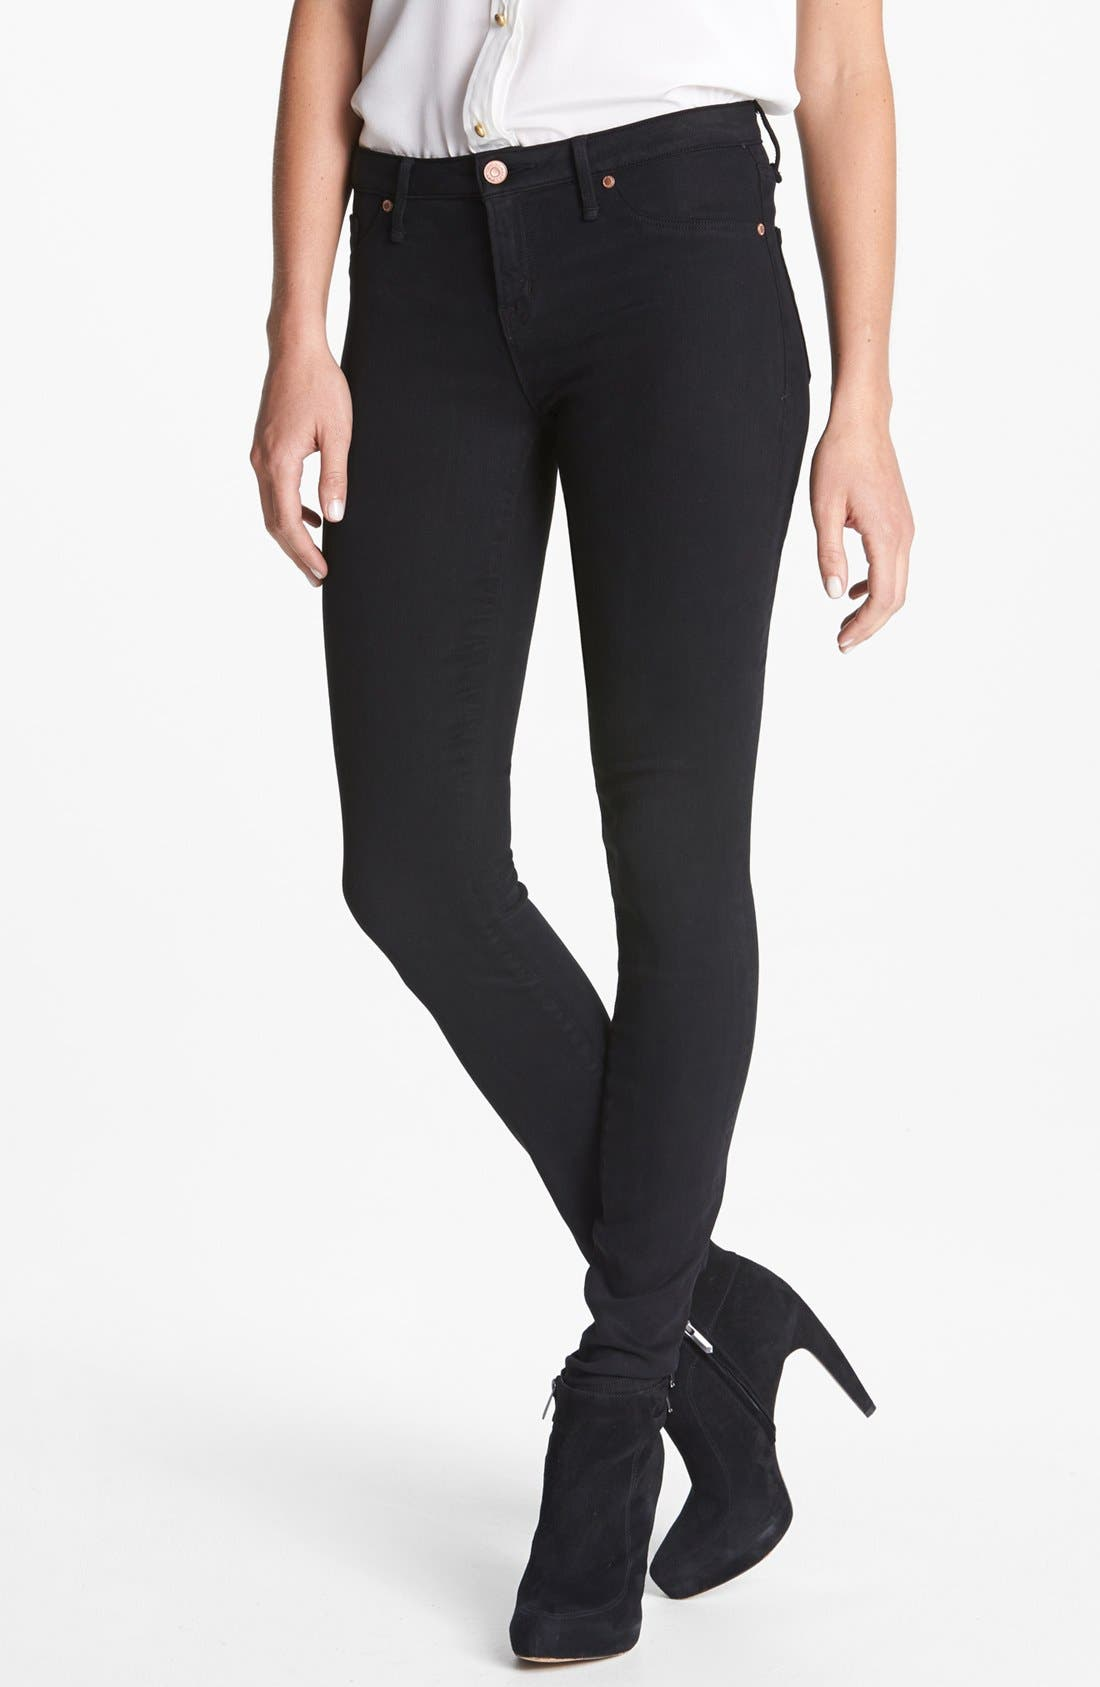 Alternate Image 1 Selected - MARC BY MARC JACOBS 'Stick' Colored Skinny Stretch Jeans